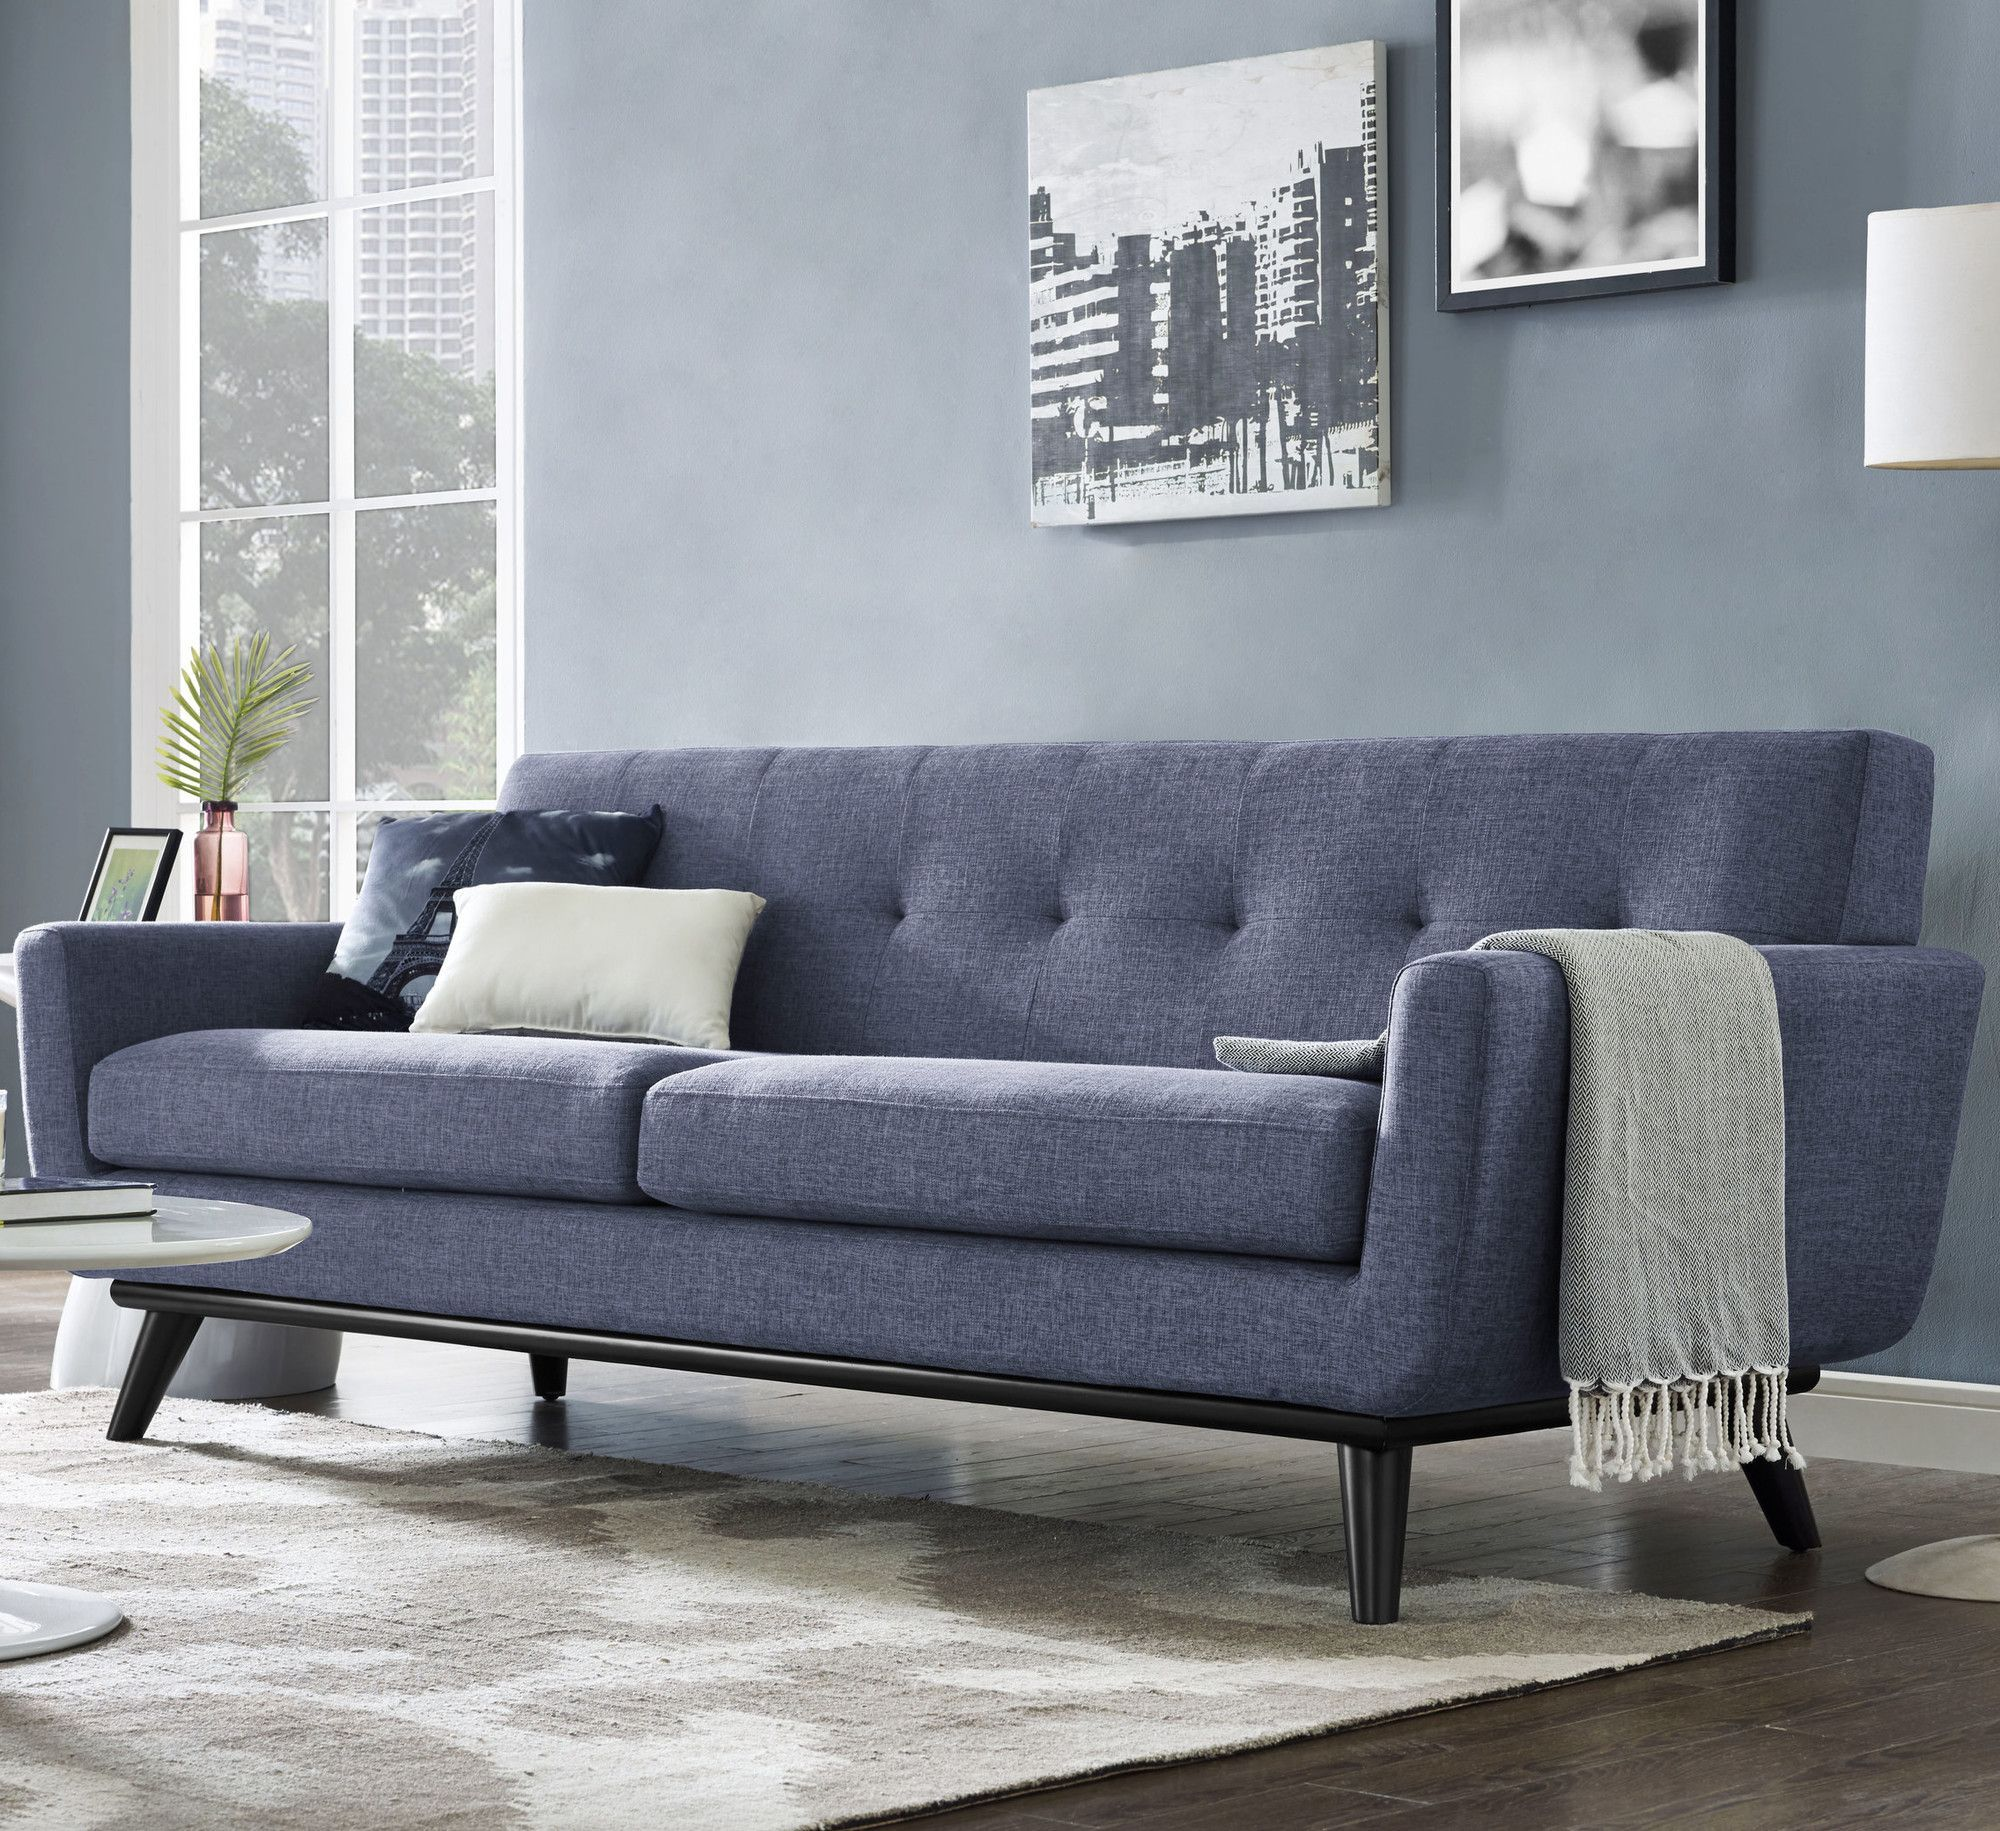 James sofa products pinterest products